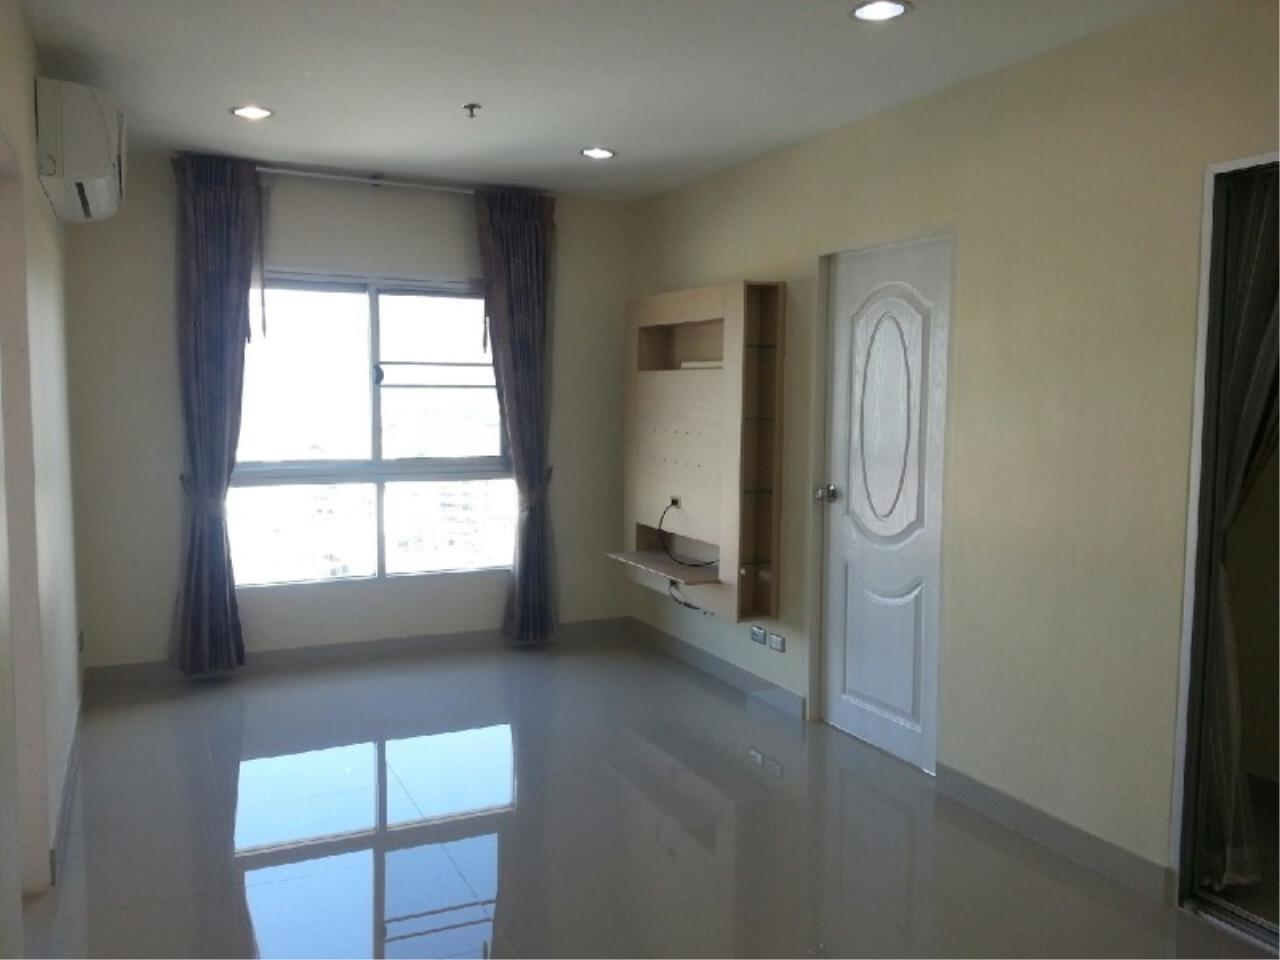 Piri Property Agency's 2 bedrooms Condominium  on 16 floor For Sale 2 23